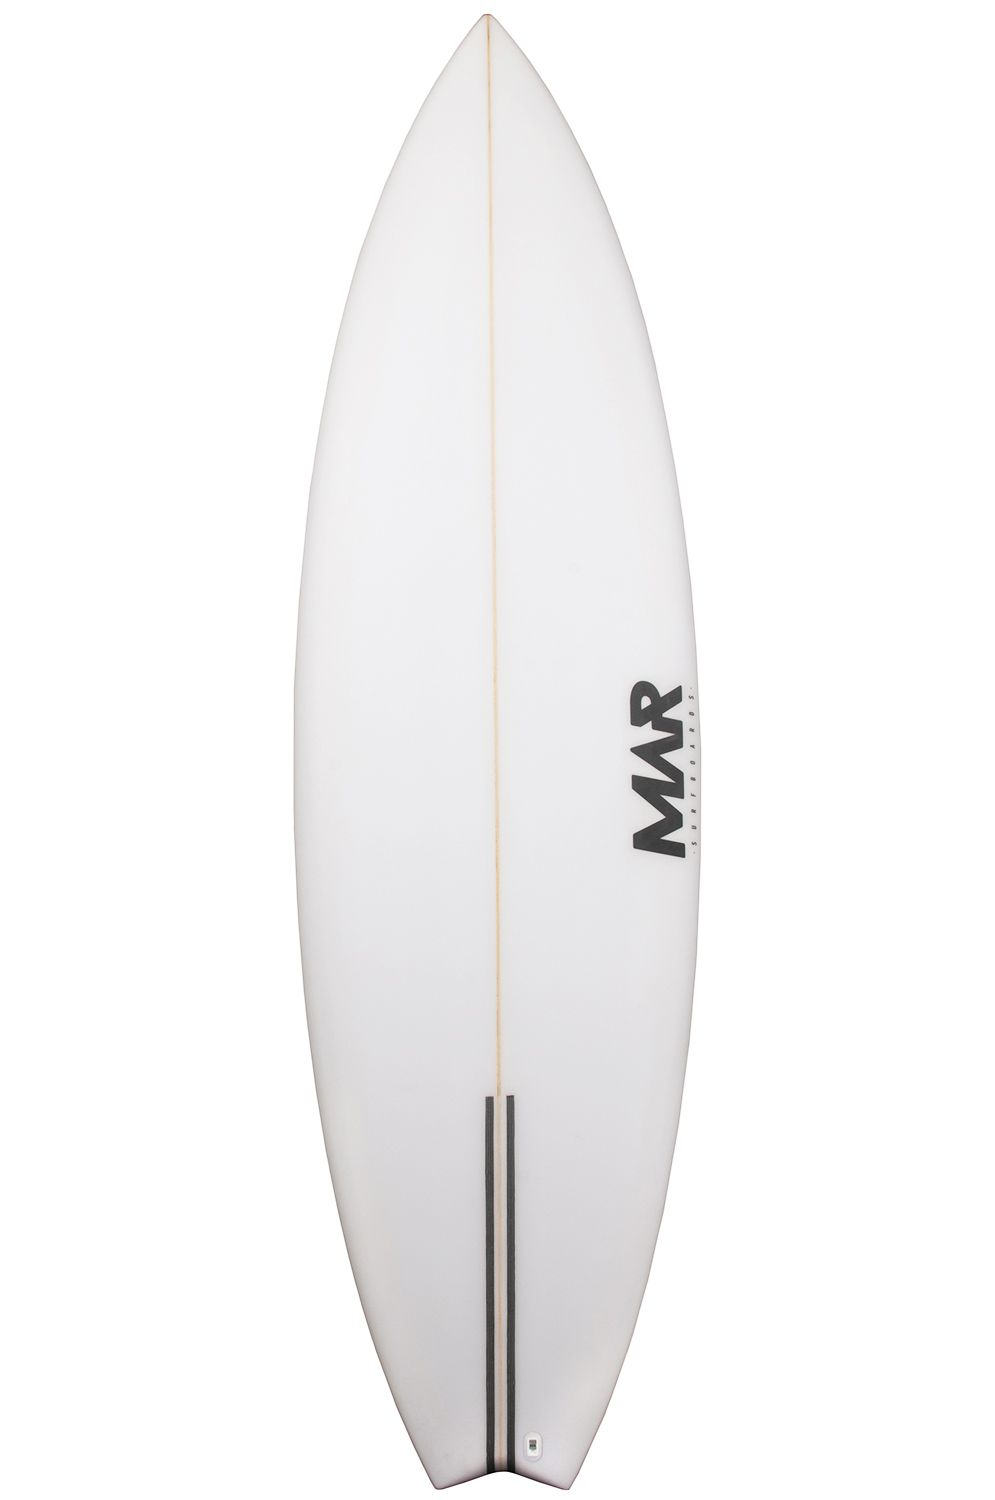 Mar Surf Board 6'3 PARROT PU Swallow Tail - White FCS II 6ft3